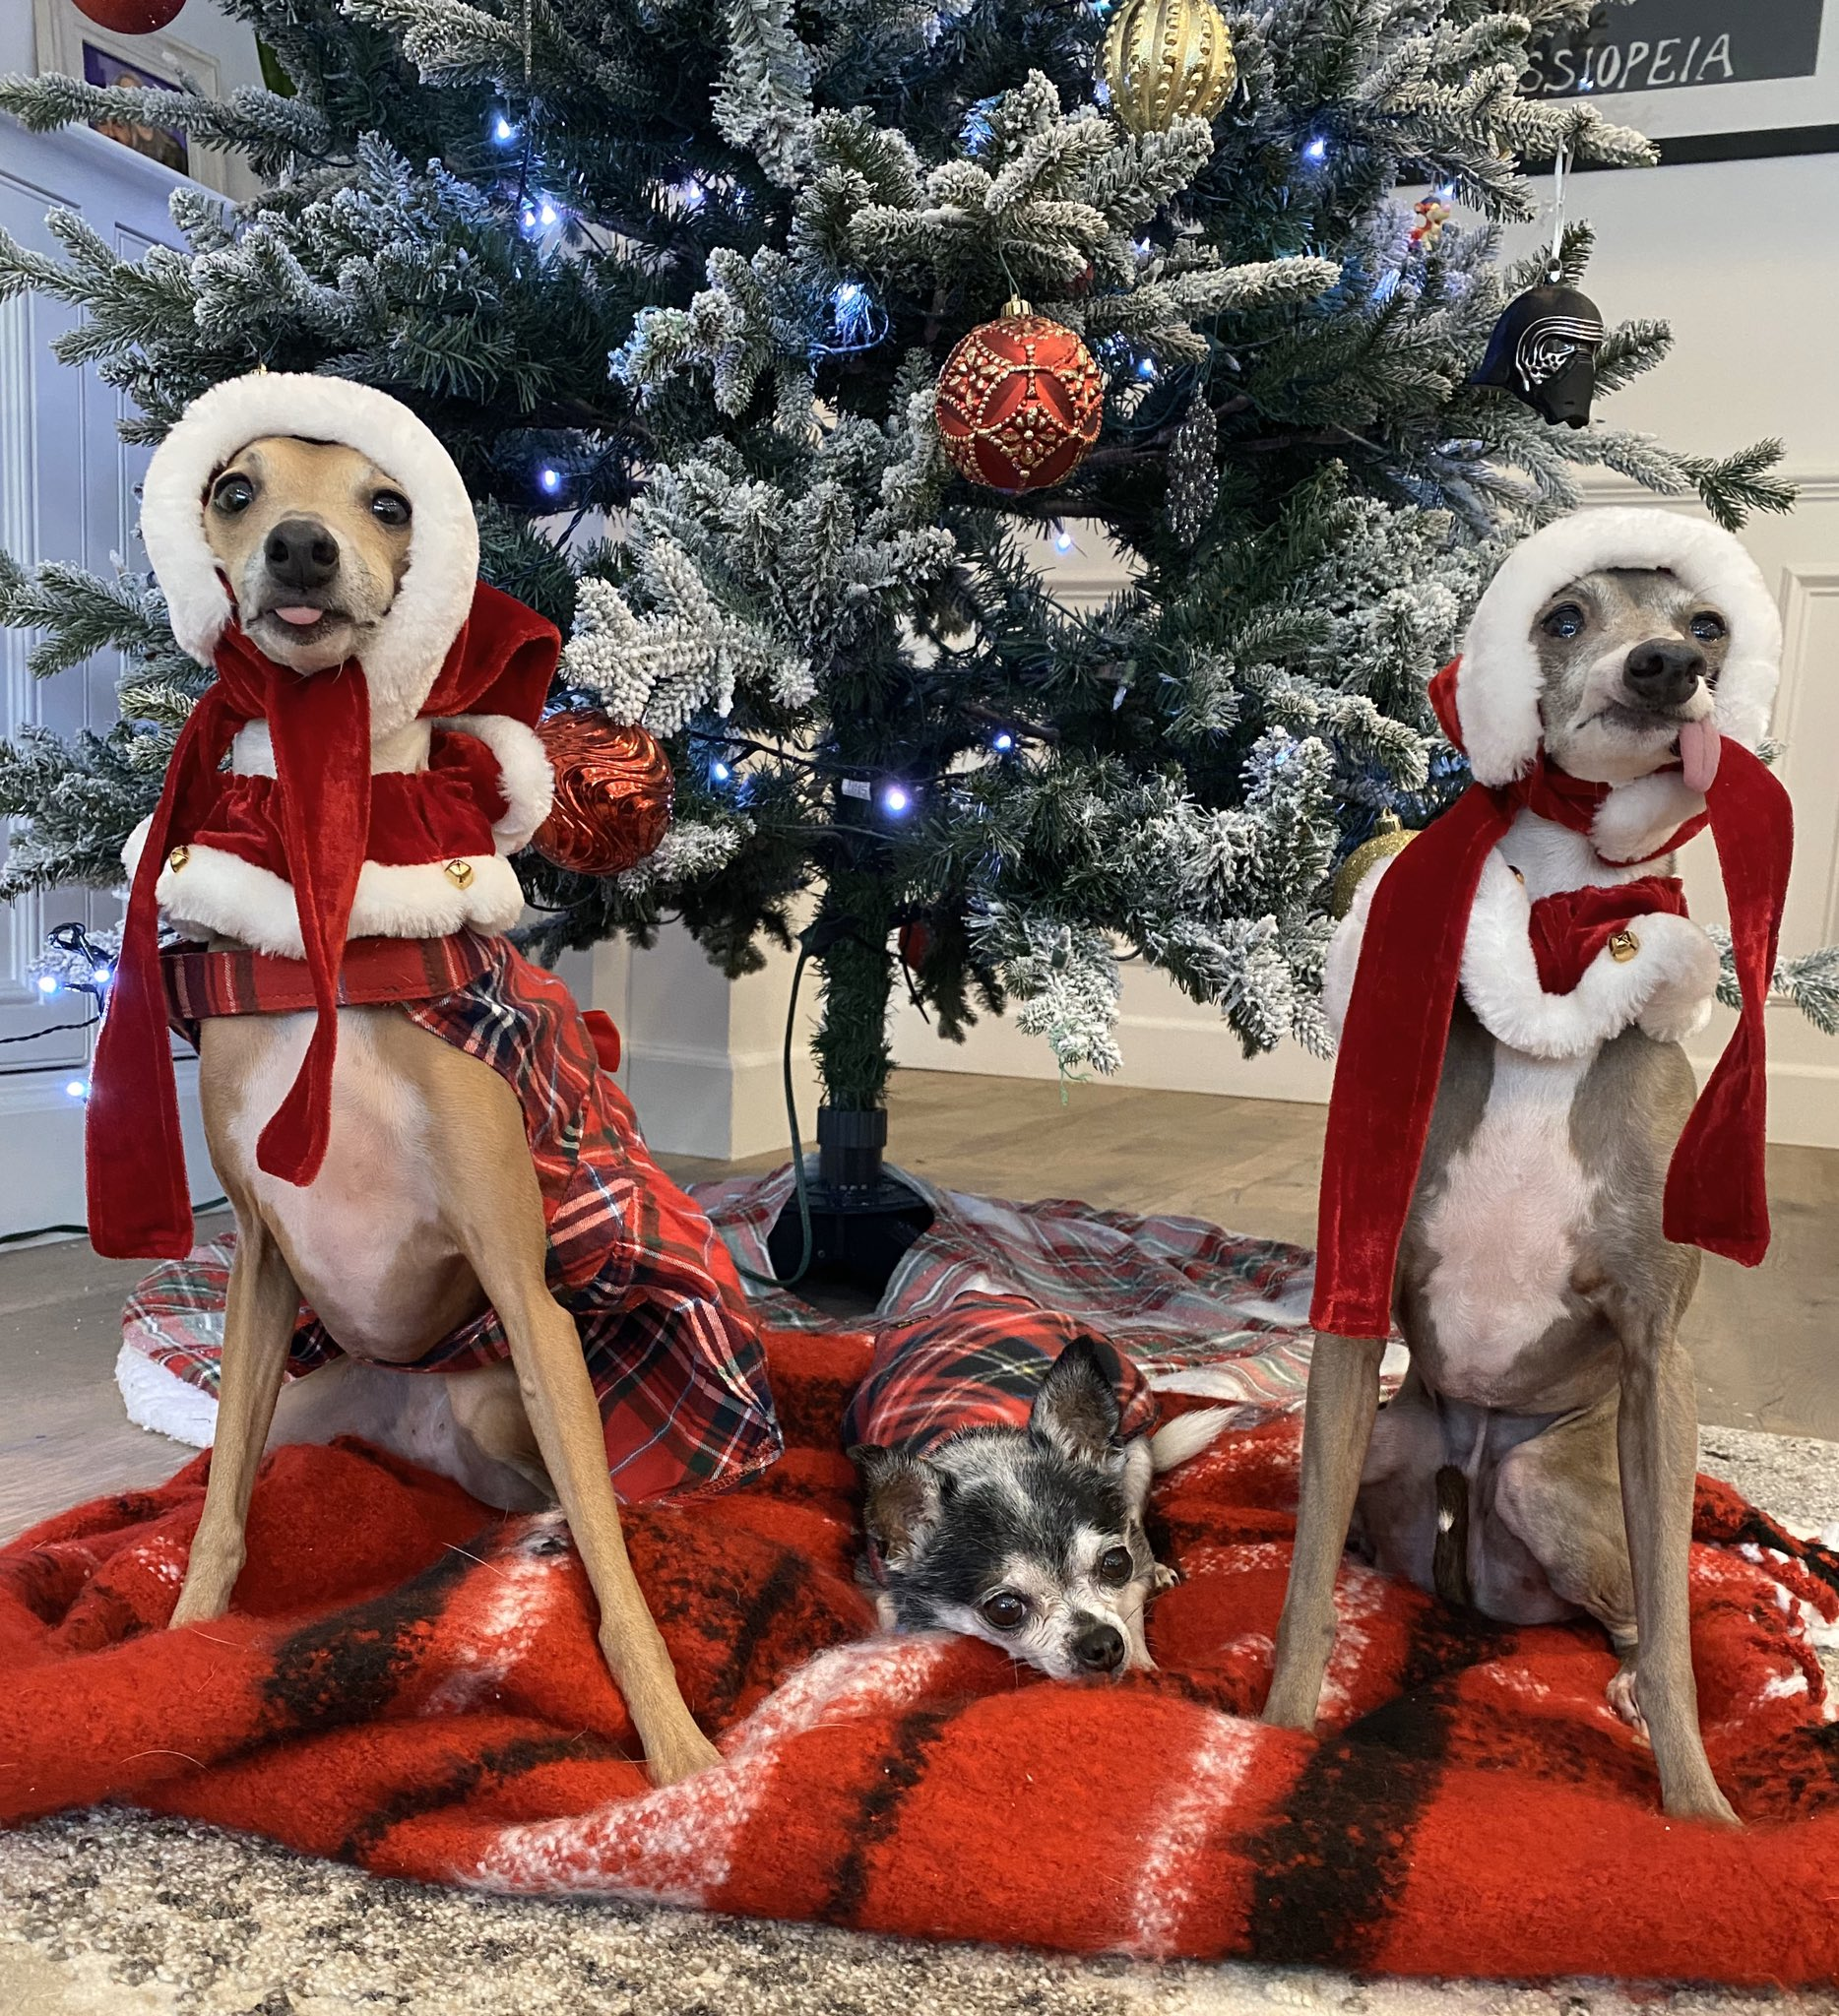 Two Italian greyhounds and a chihuahua in Christmas clothing in front of a Christmas tree.